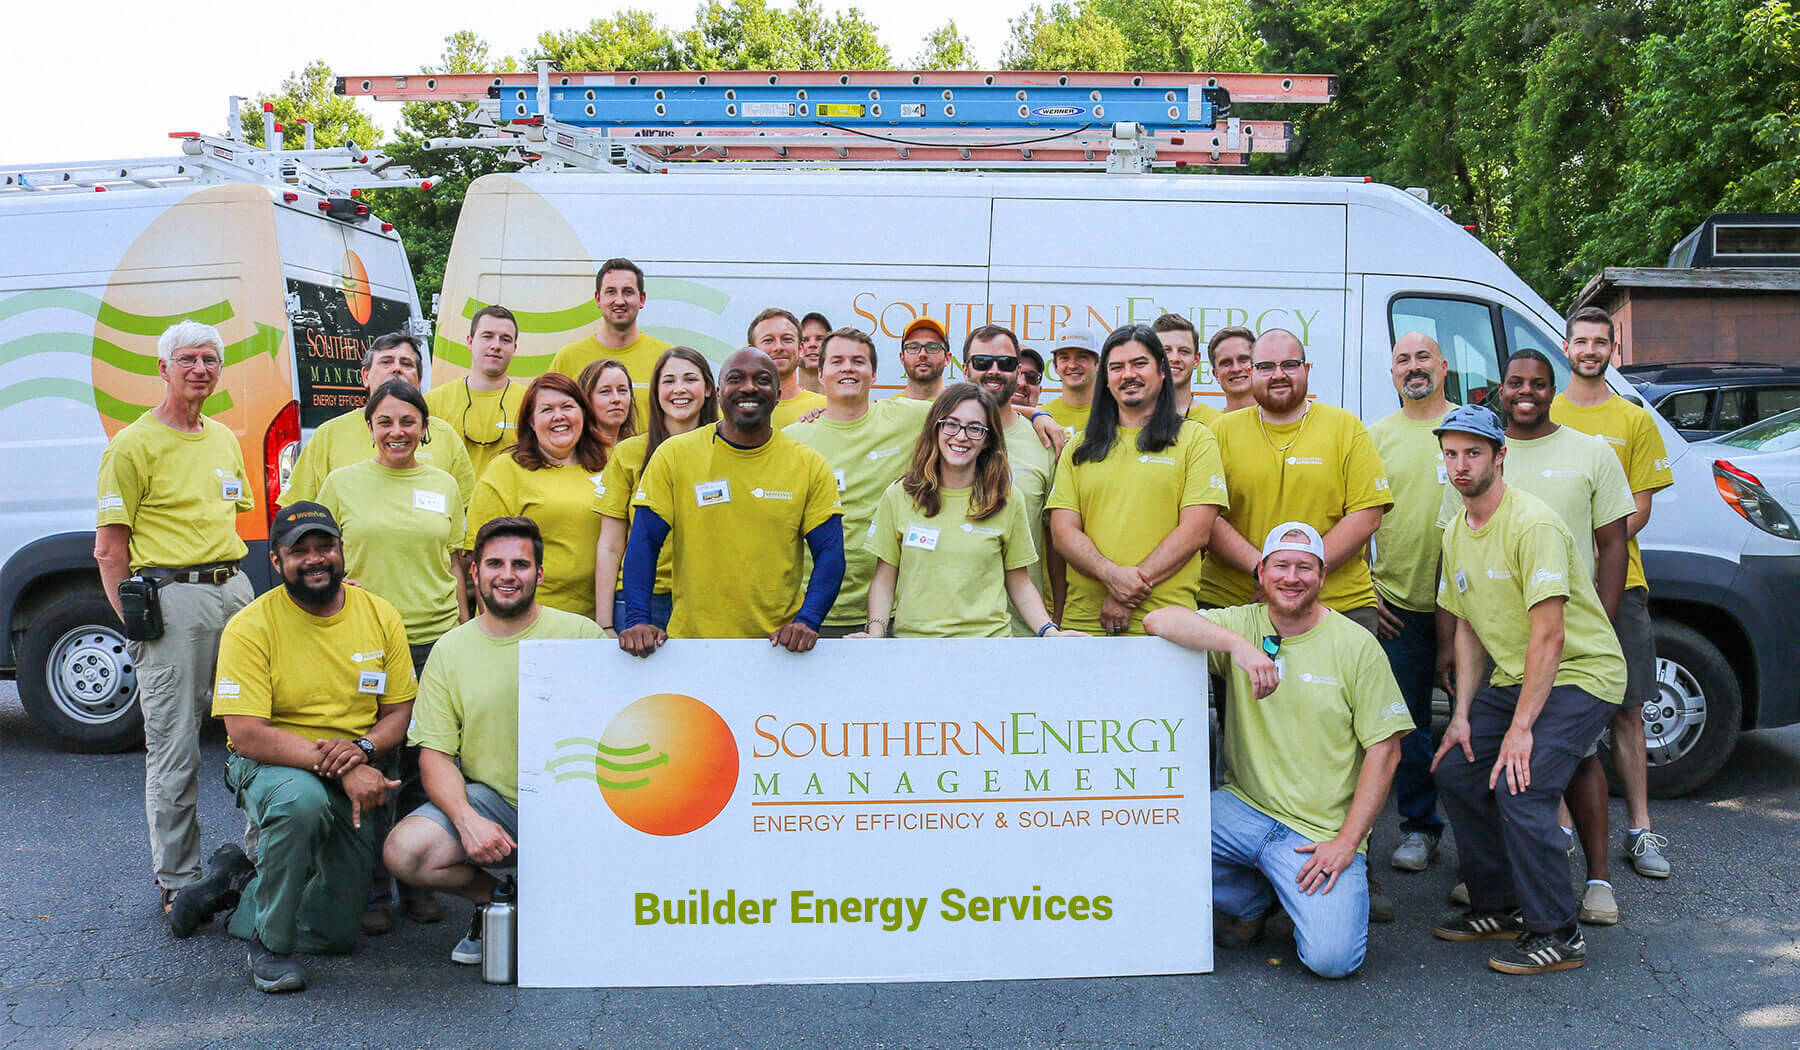 Southern Energy Management's Builder Energy Services team